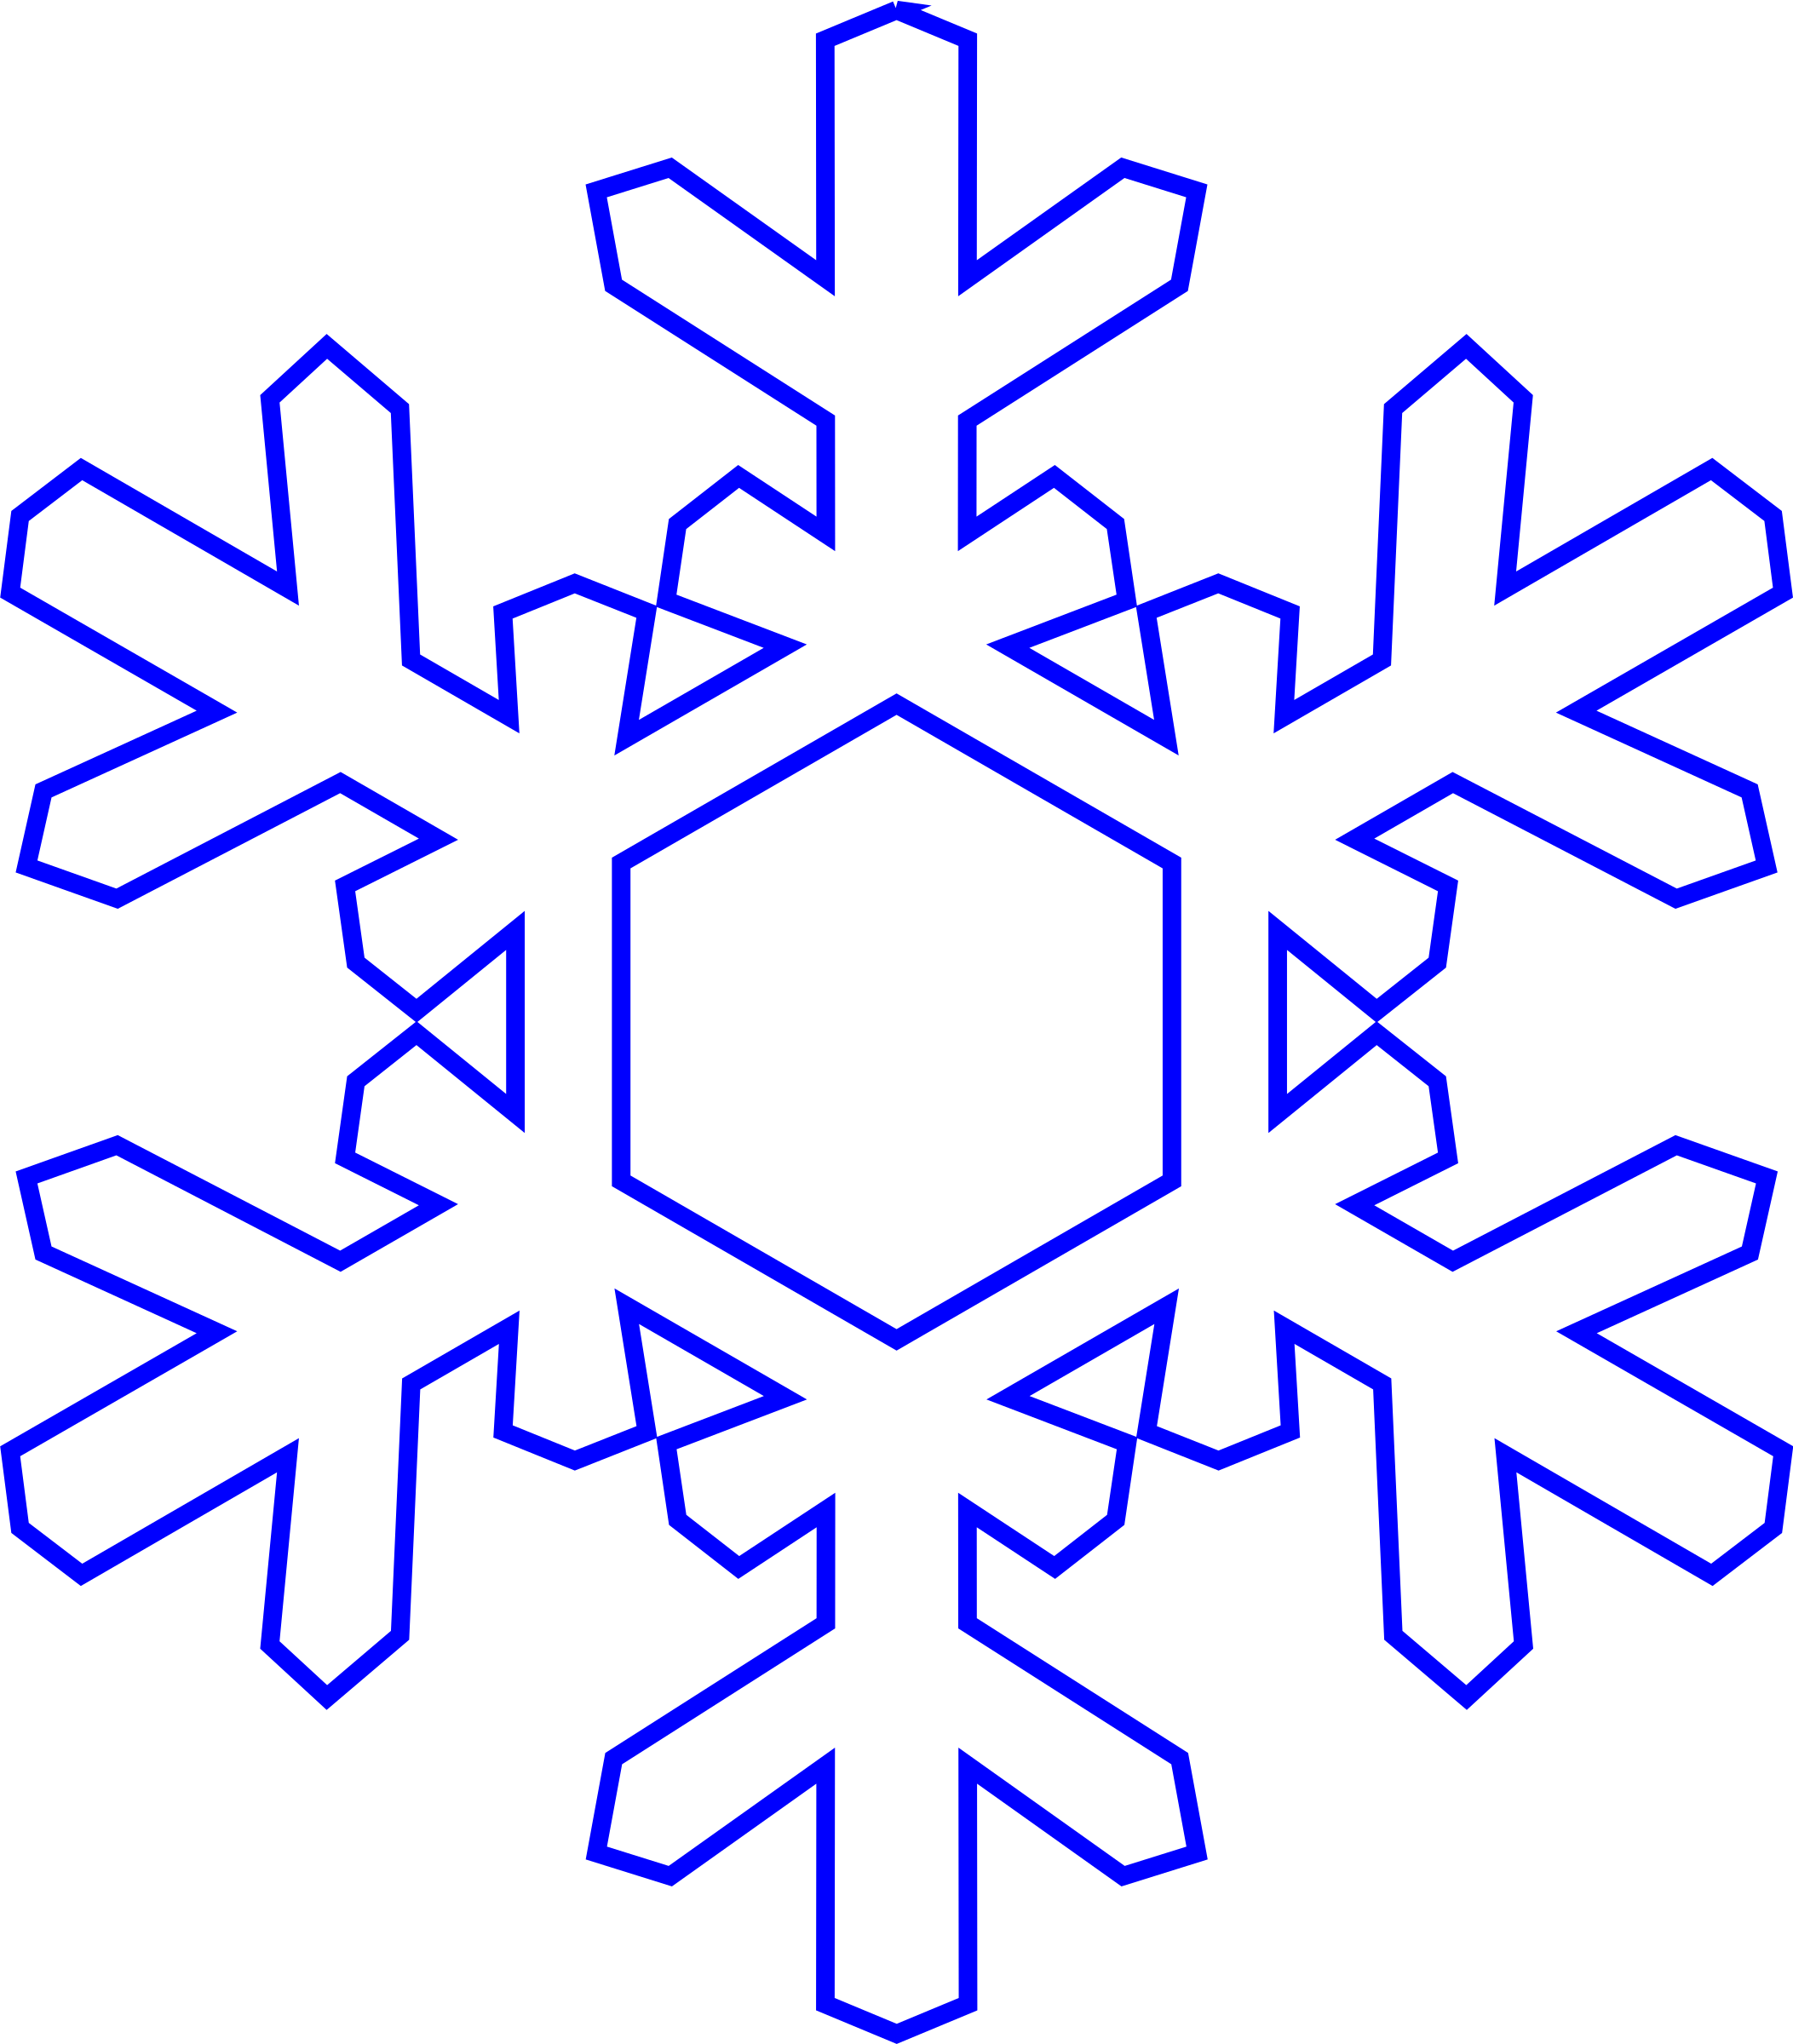 2105x2400 Images Of Snow Flakes Clip Art Wallpaper